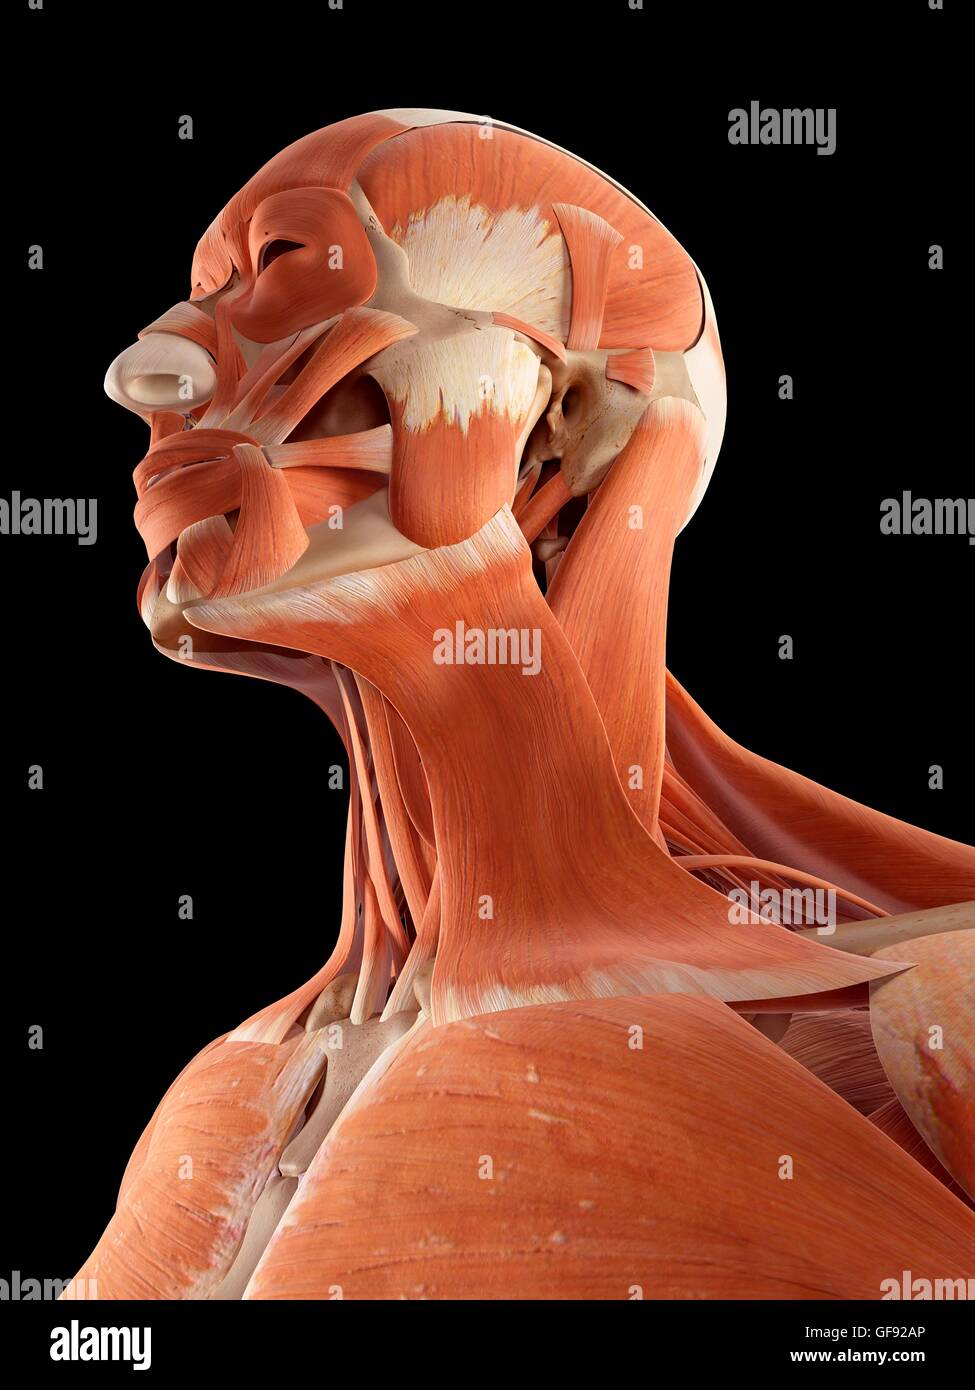 Head And Neck Muscles Stockfotos & Head And Neck Muscles Bilder - Alamy